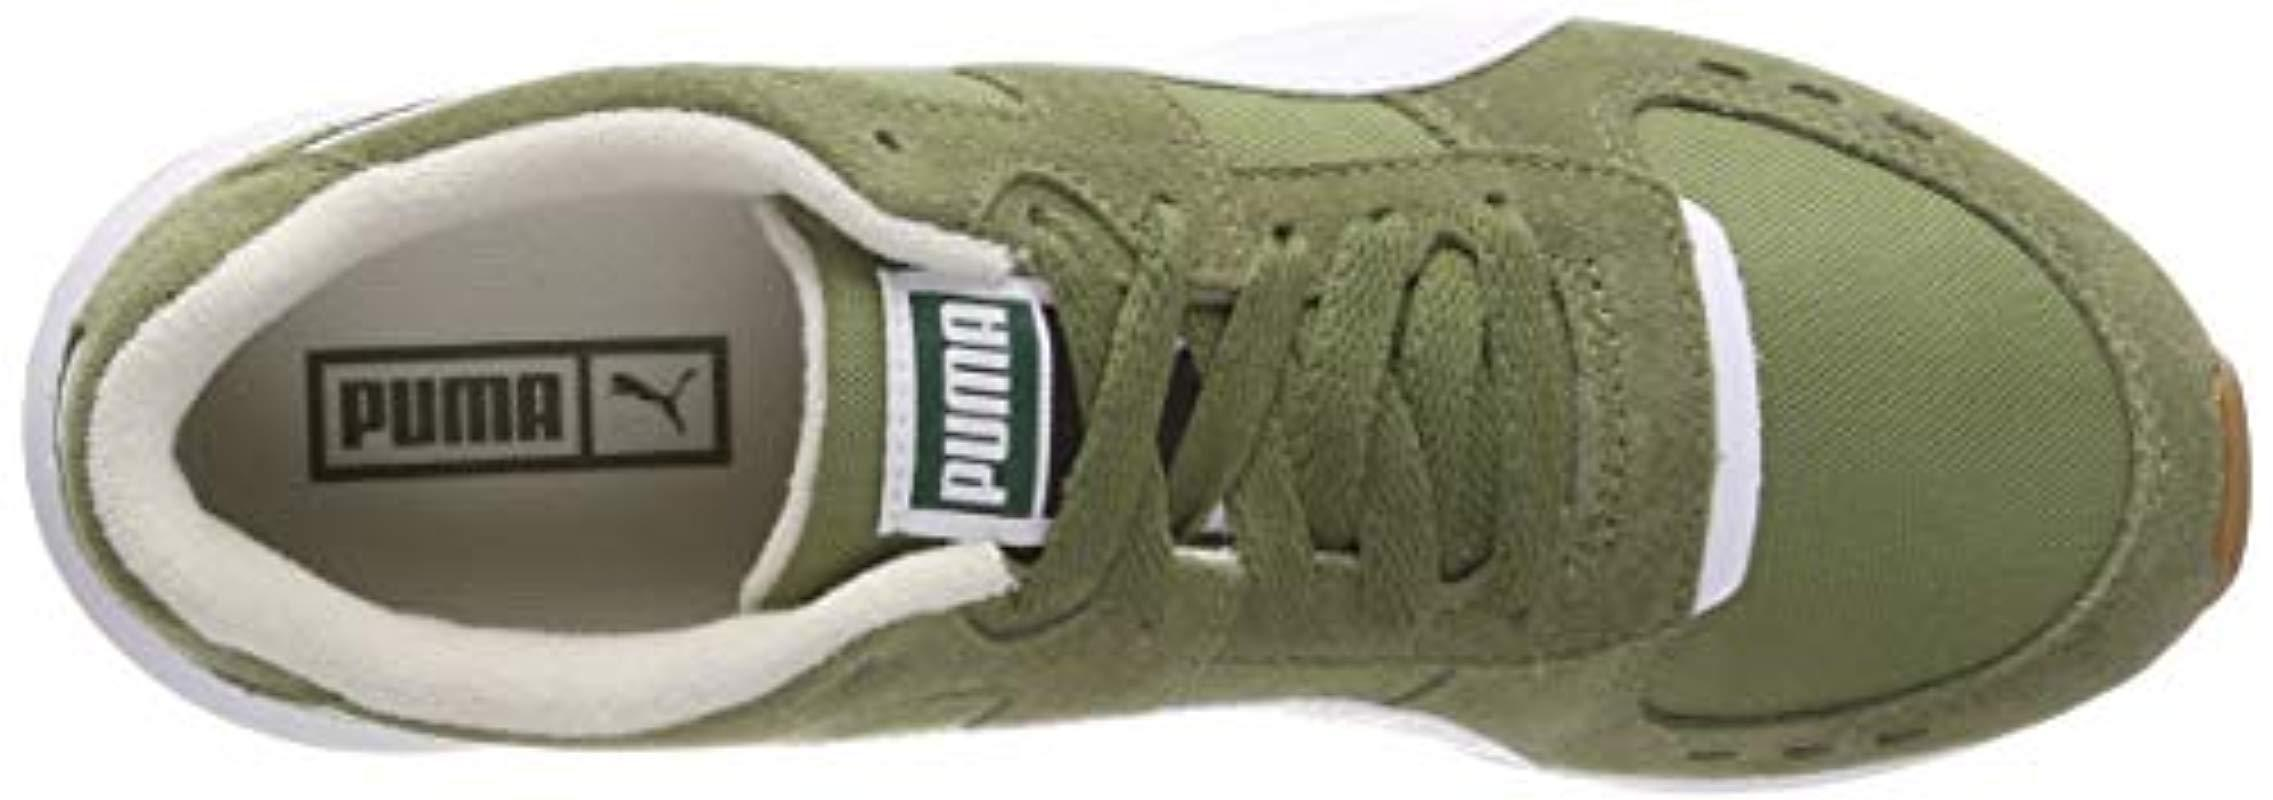 Puma Wn's Low Nylon Top Rs Lyst In Green Sneakers 150 wIrtEIfaq